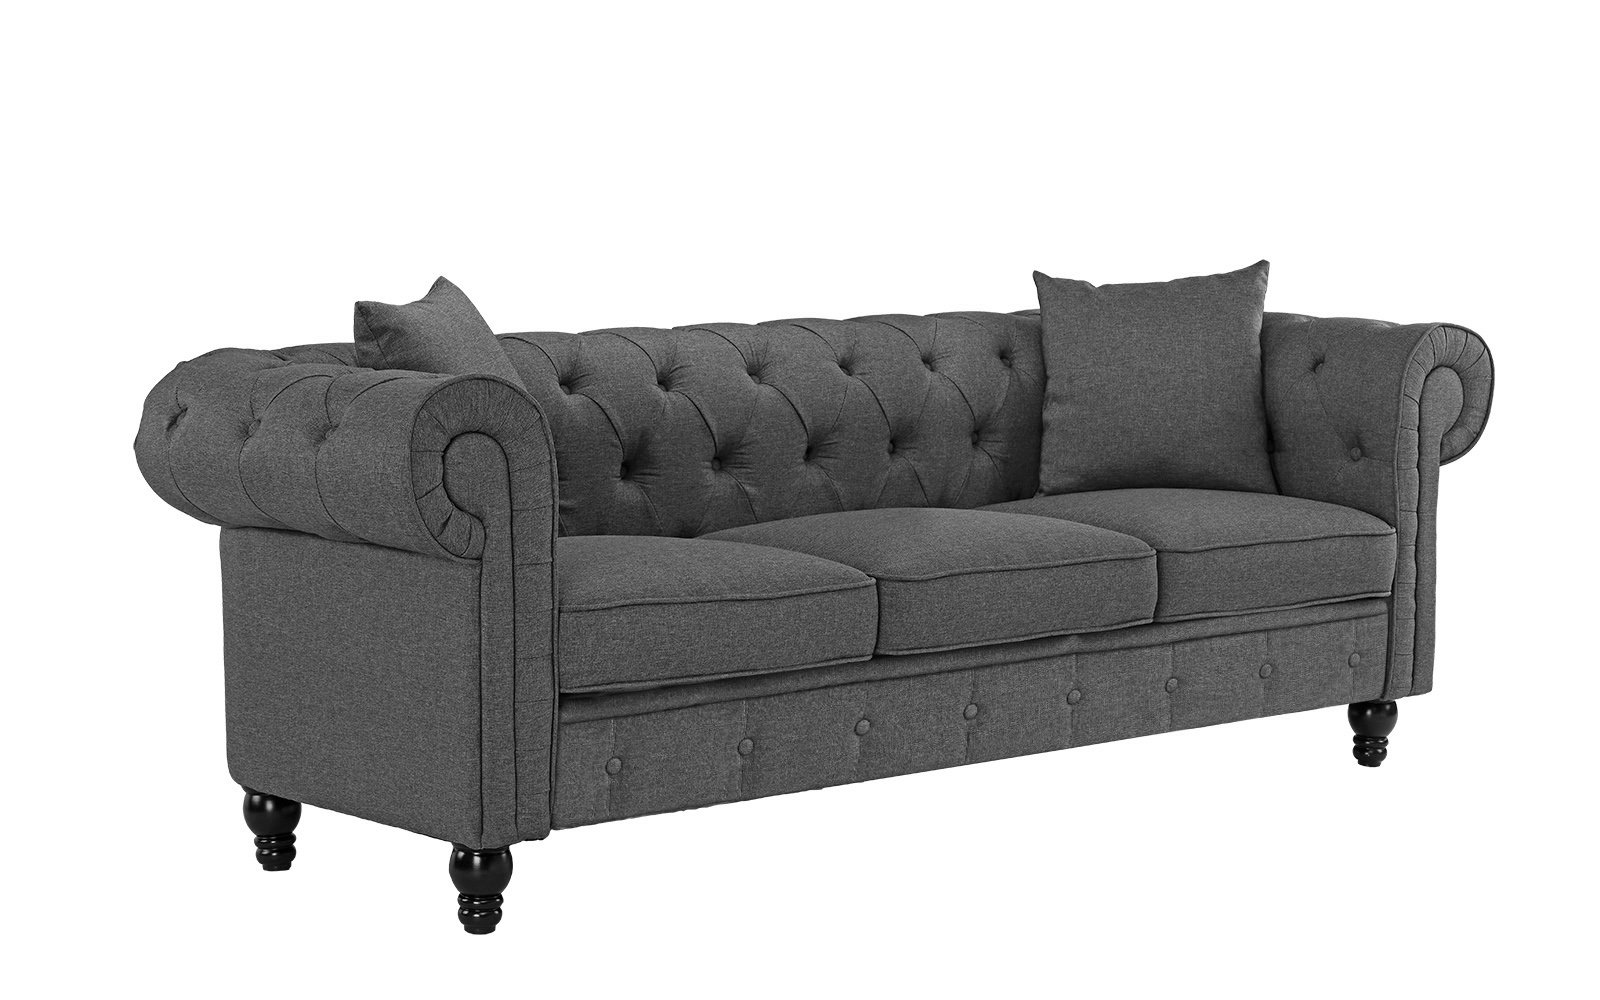 Classic Fabric Sofa Scroll Arm Tufted Button Chesterfield Couch Light Grey